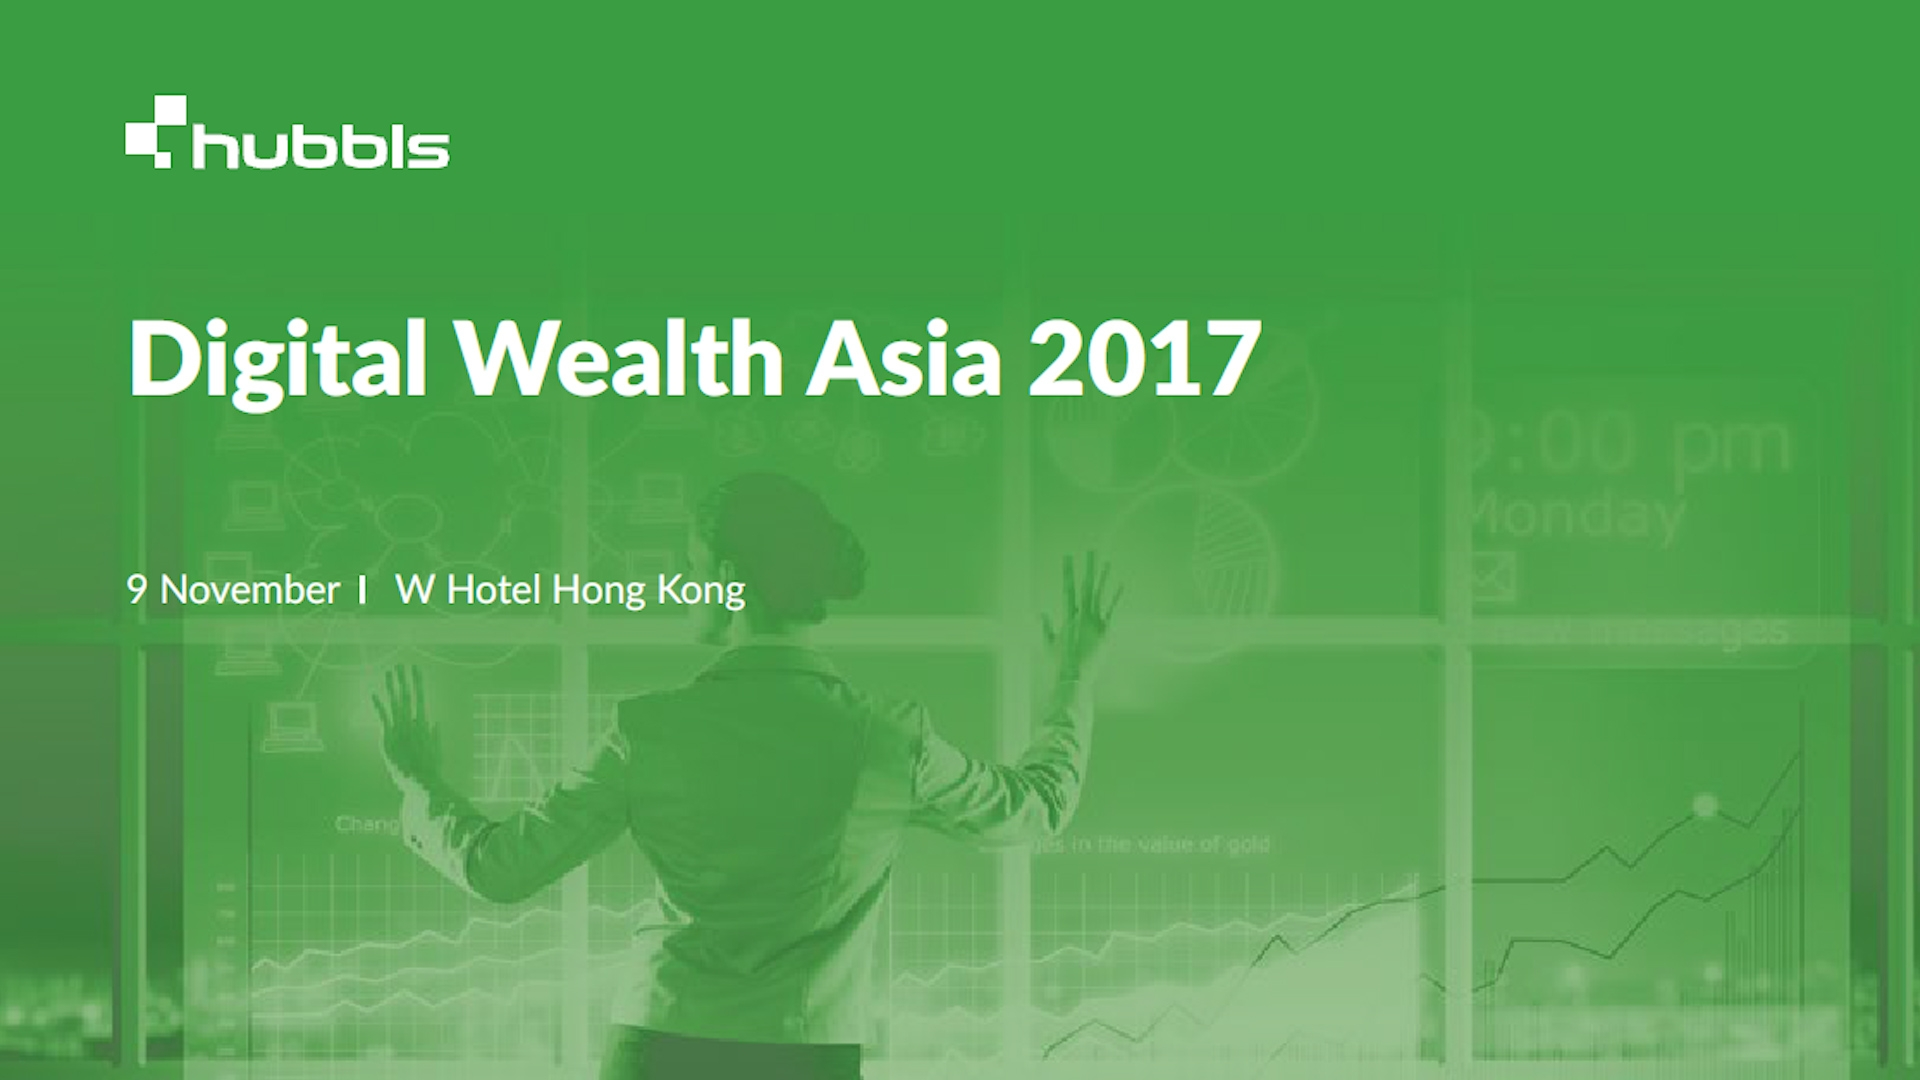 Digital Wealth Asia 2017 - highlights